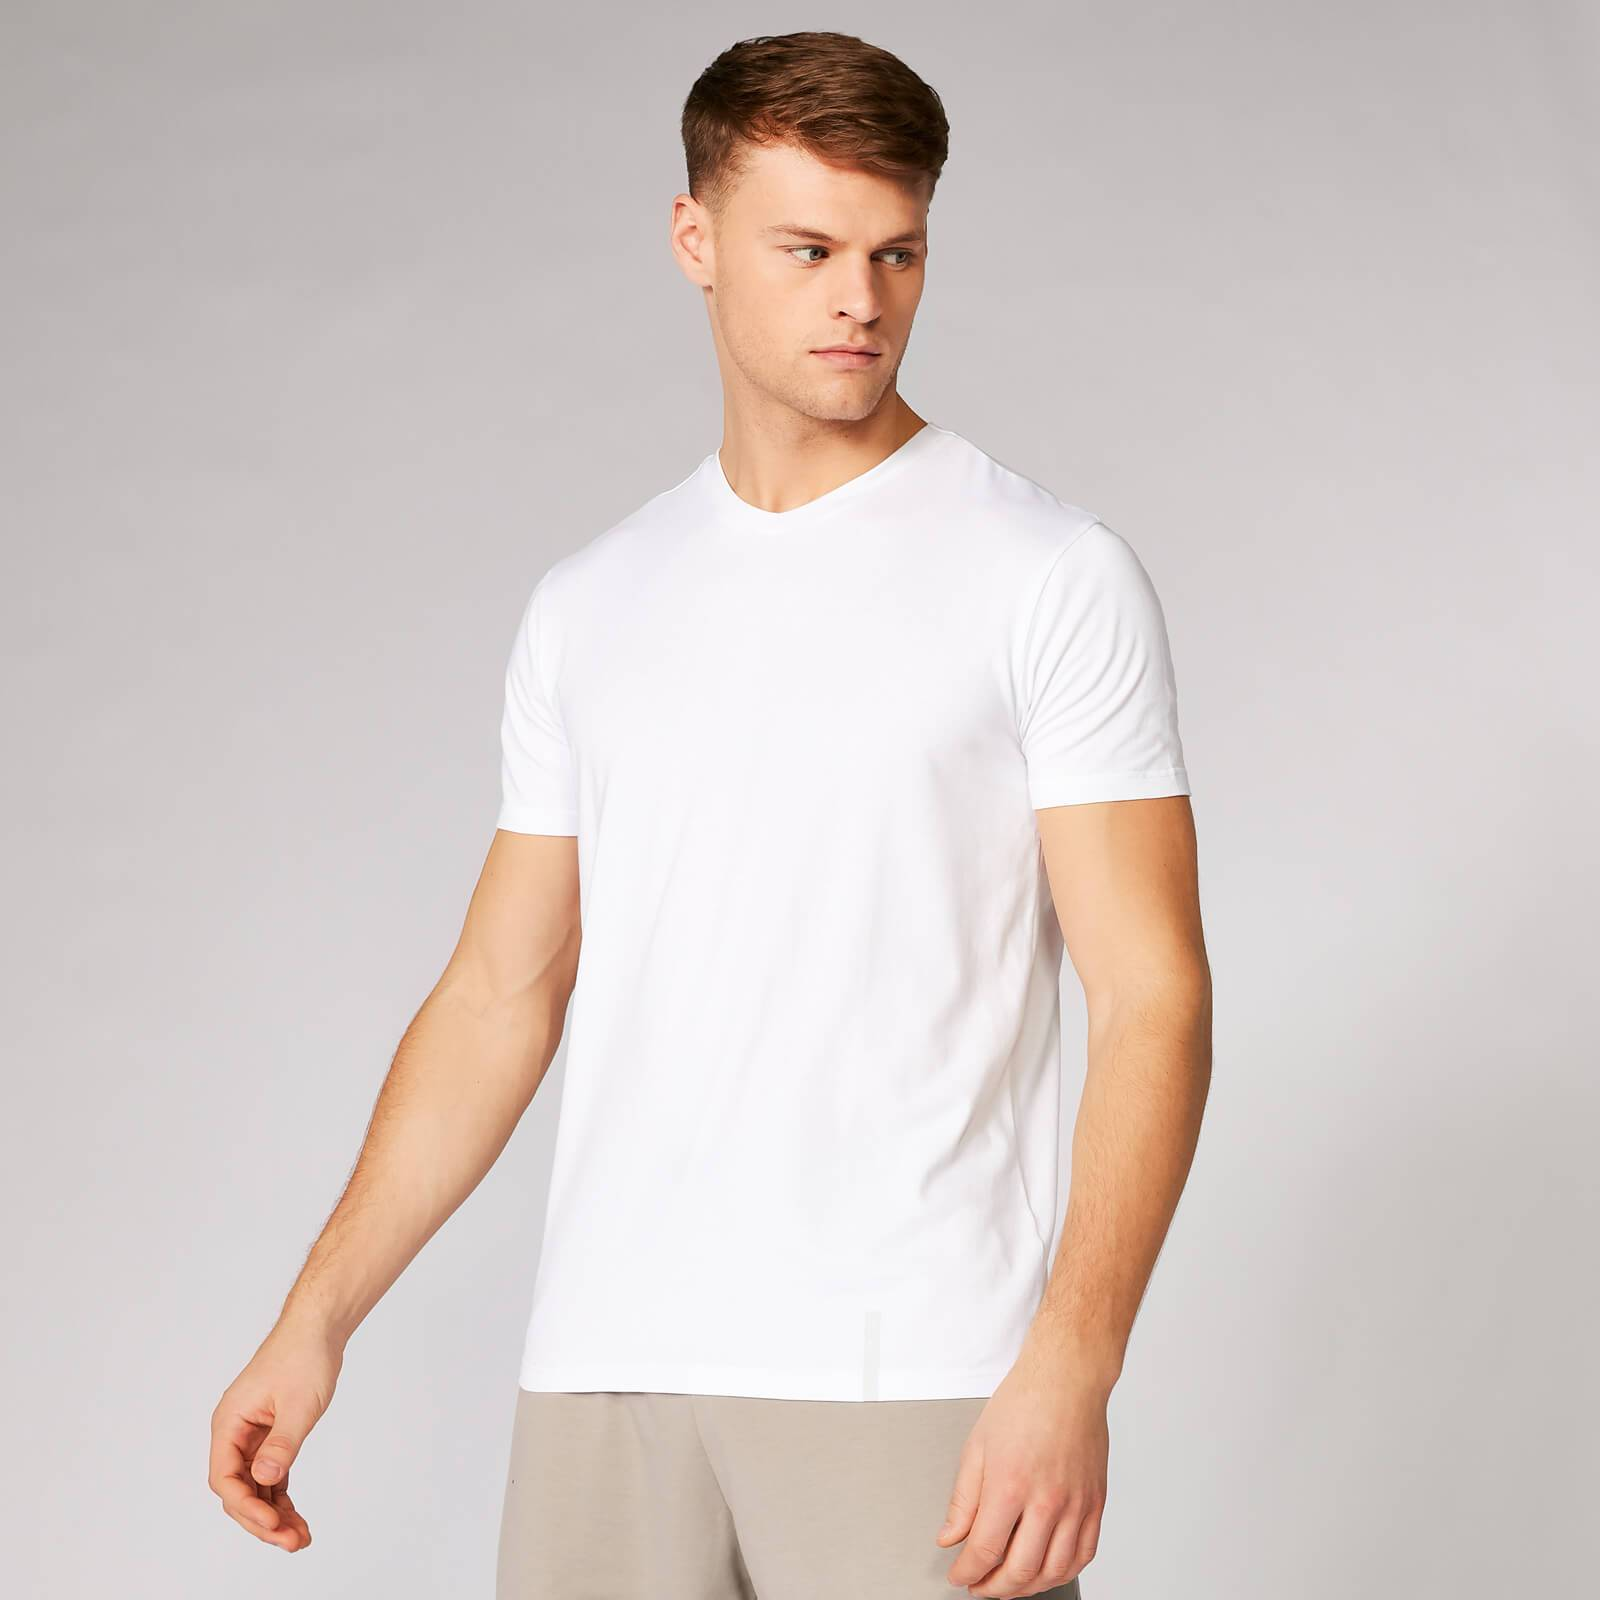 Myprotein Luxe Classic V-Neck T-Shirt - White - XS